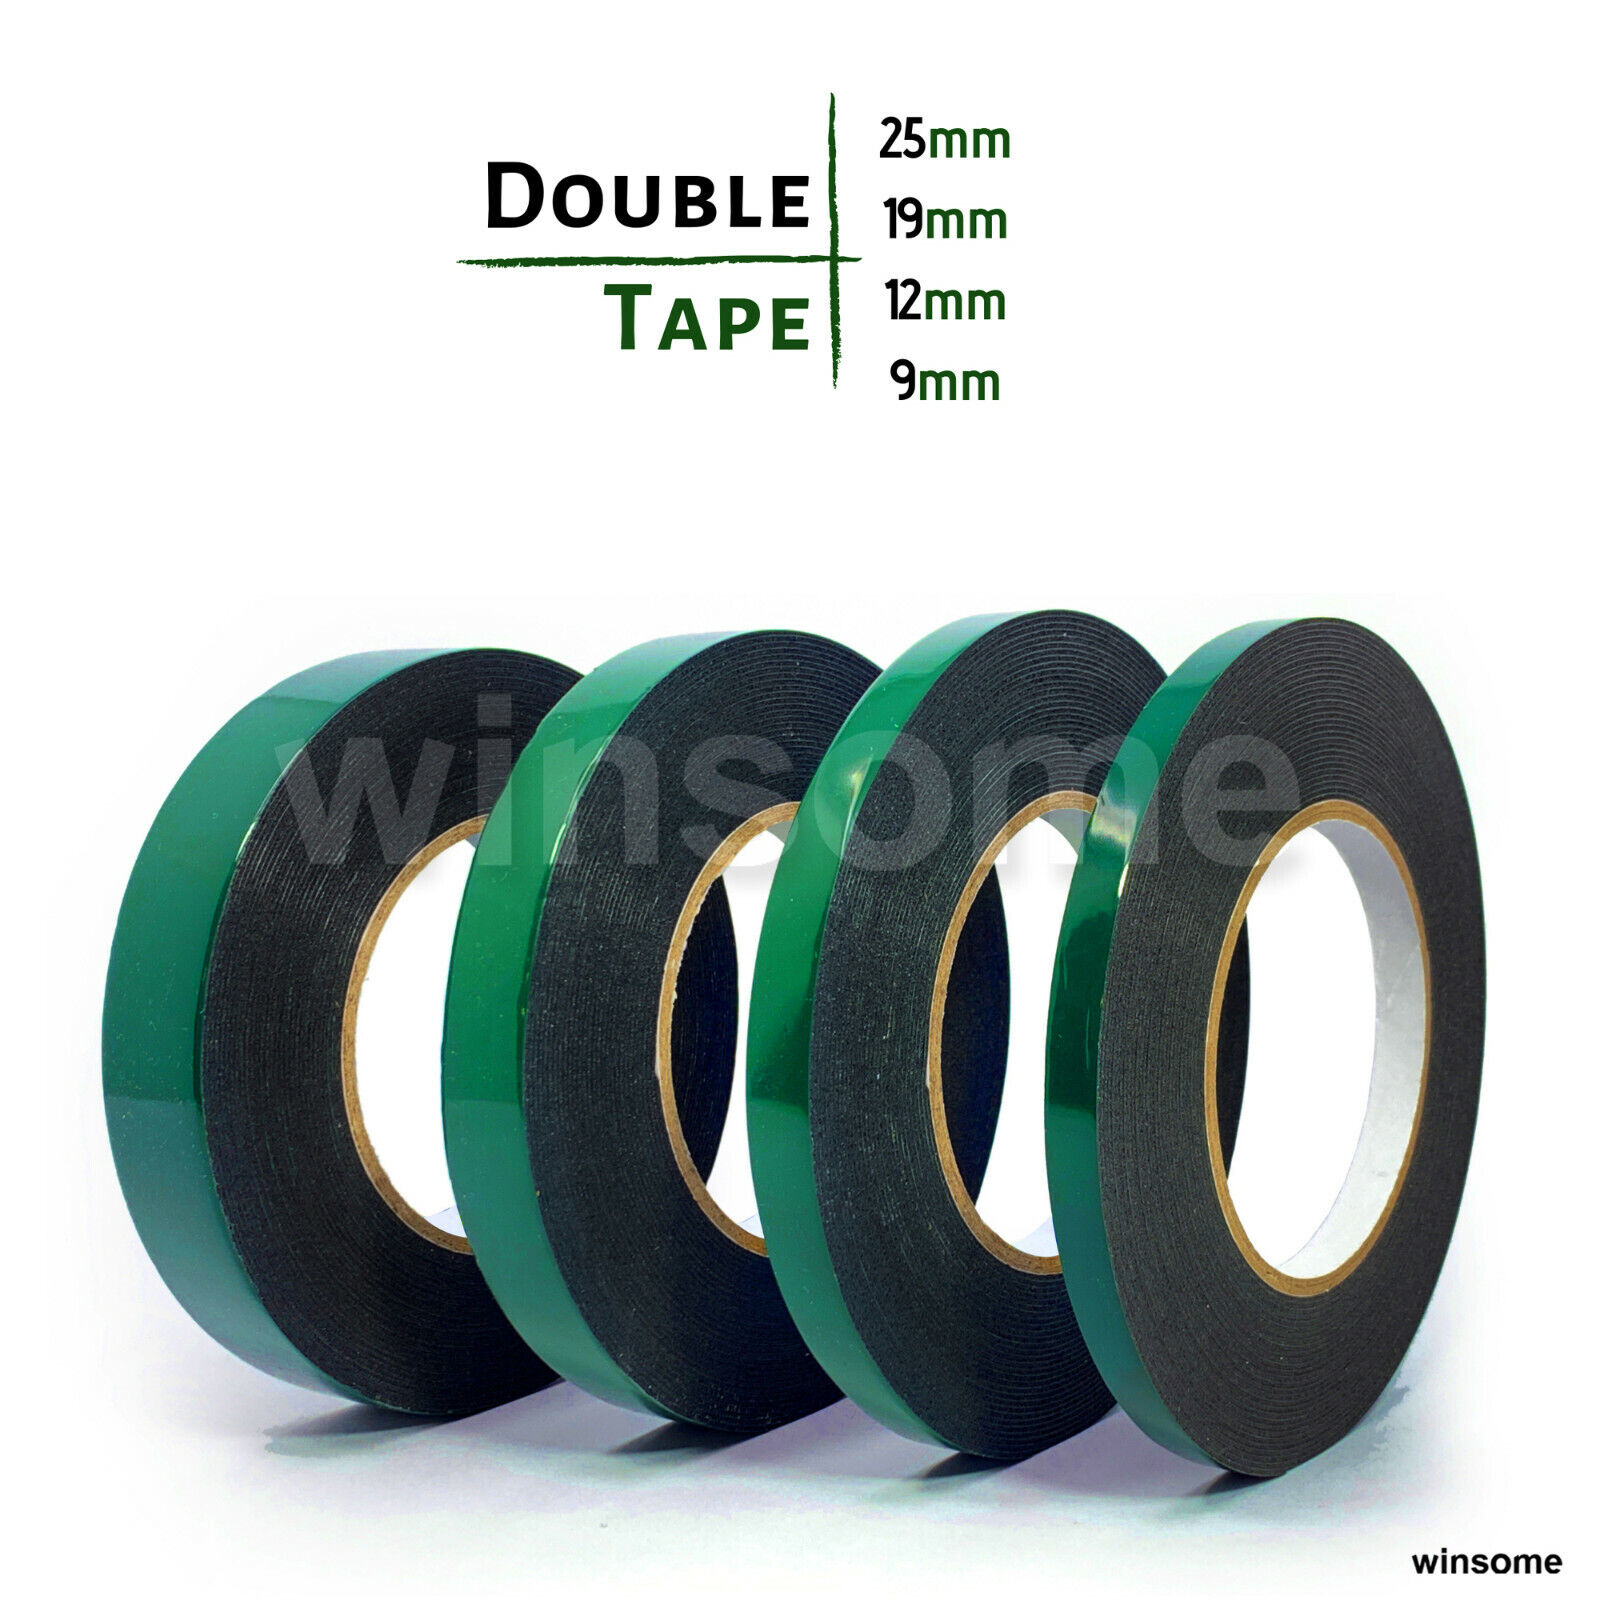 Acrylic Double Sided Sticky Adhesive Tape Strong No Trace Foam Sponge Craft BE